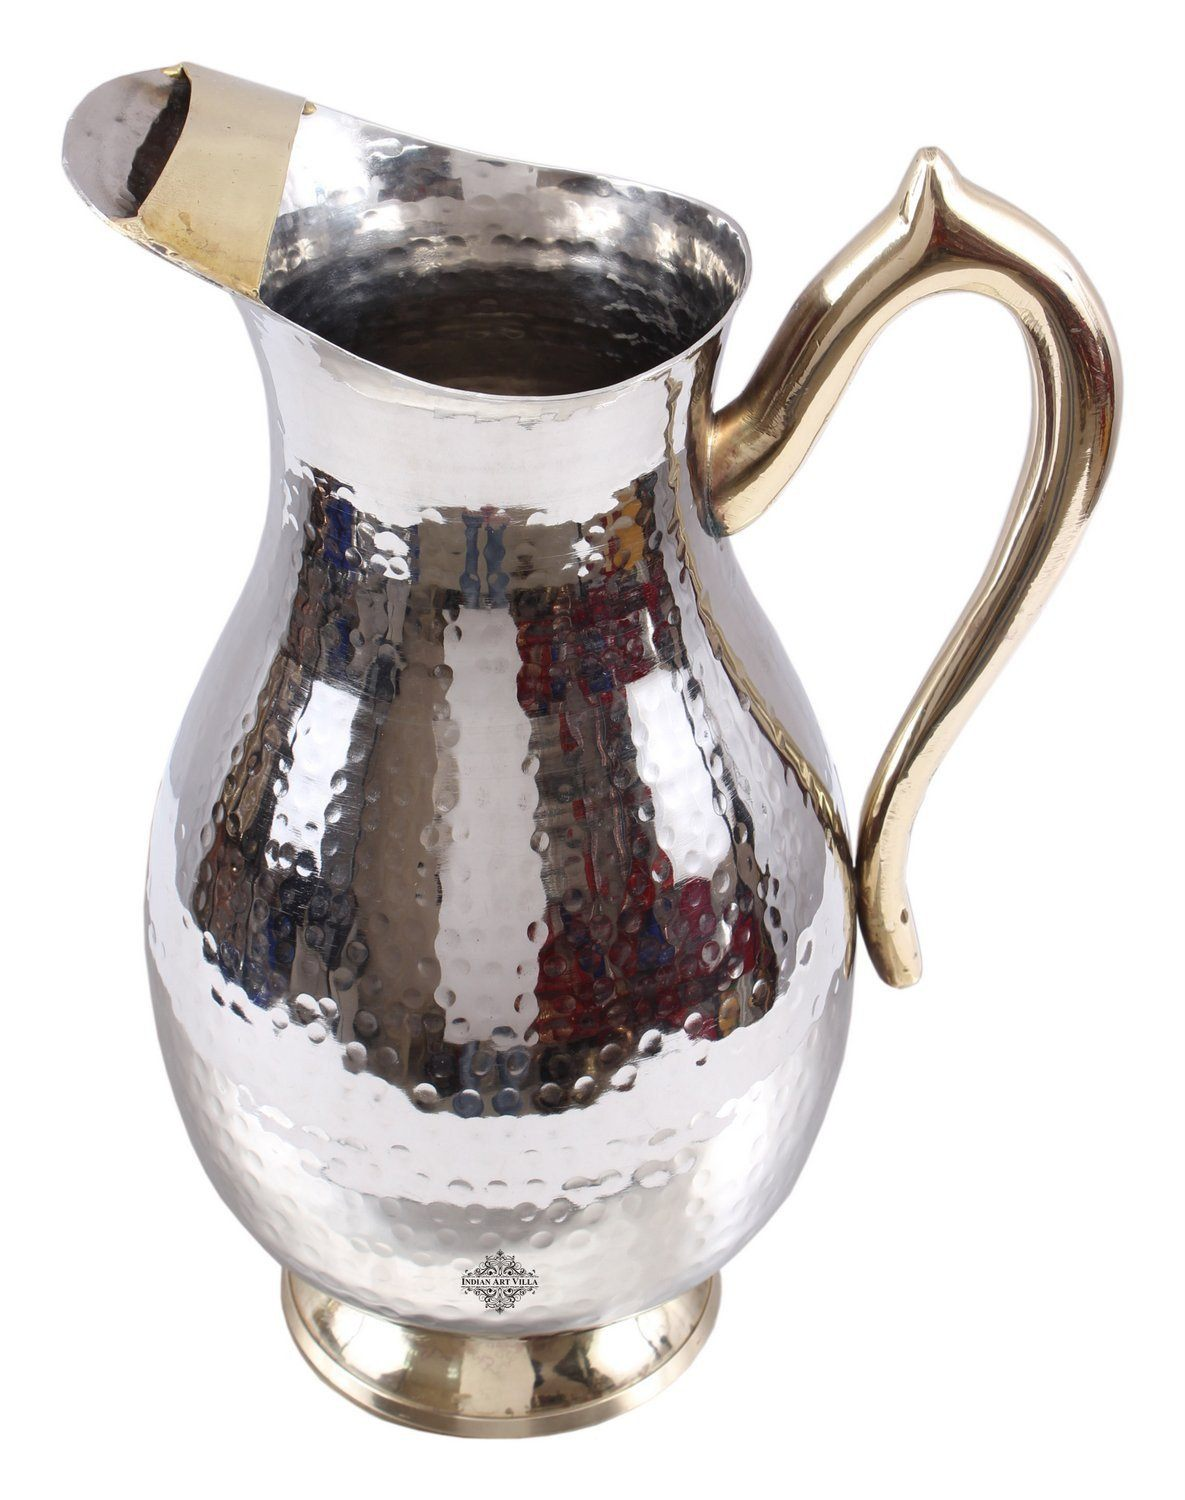 Steel Royal Hammered Jug Pitcher with Brass Handle Serving Water 64 Oz